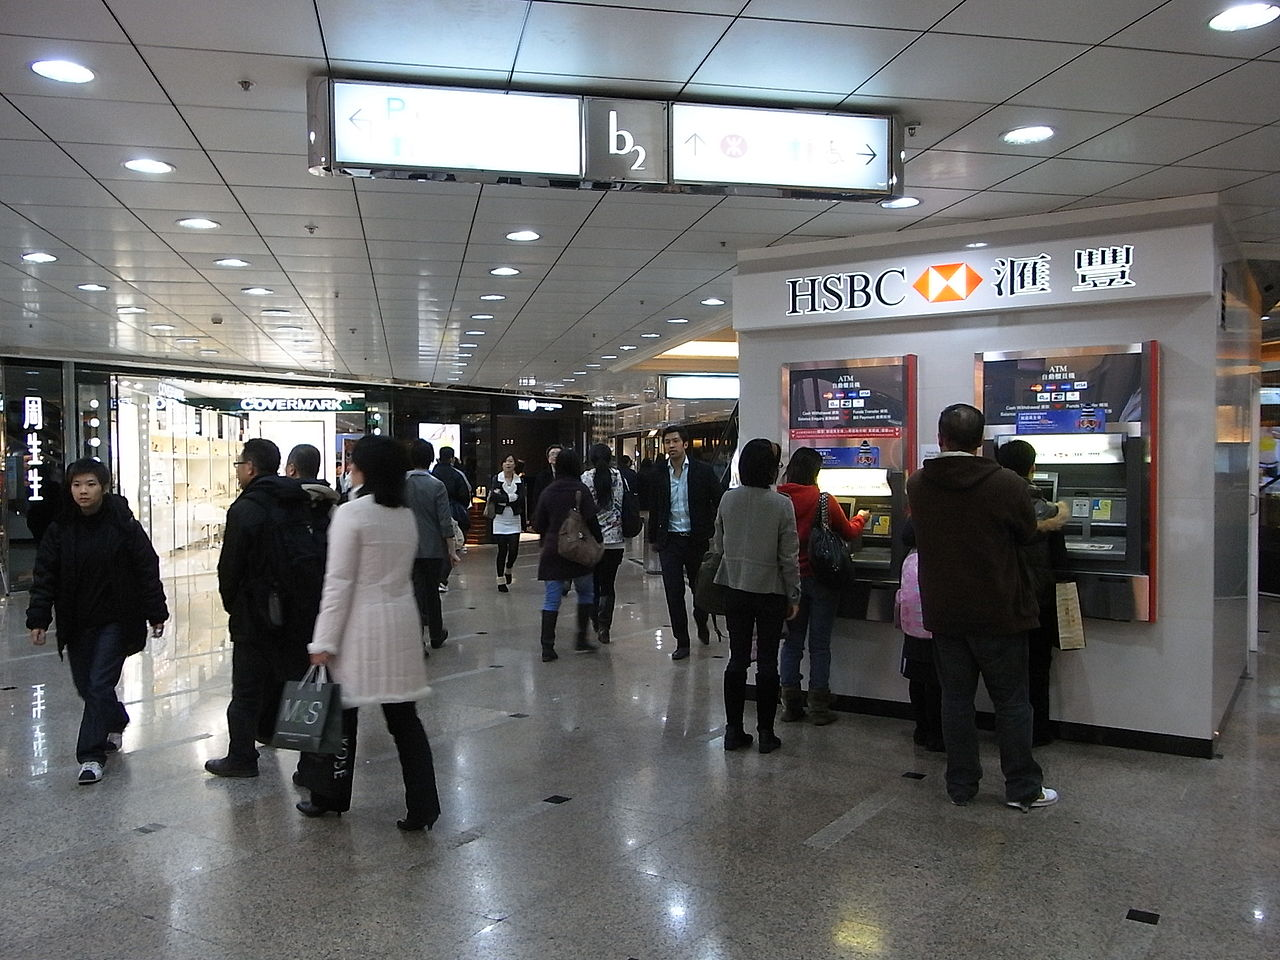 http://upload.wikimedia.org/wikipedia/commons/thumb/7/71/HK_Causeway_Bay_Times_Square_basement_interior_10_HSBC_ATM.JPG/1280px-HK_Causeway_Bay_Times_Square_basement_interior_10_HSBC_ATM.JPG